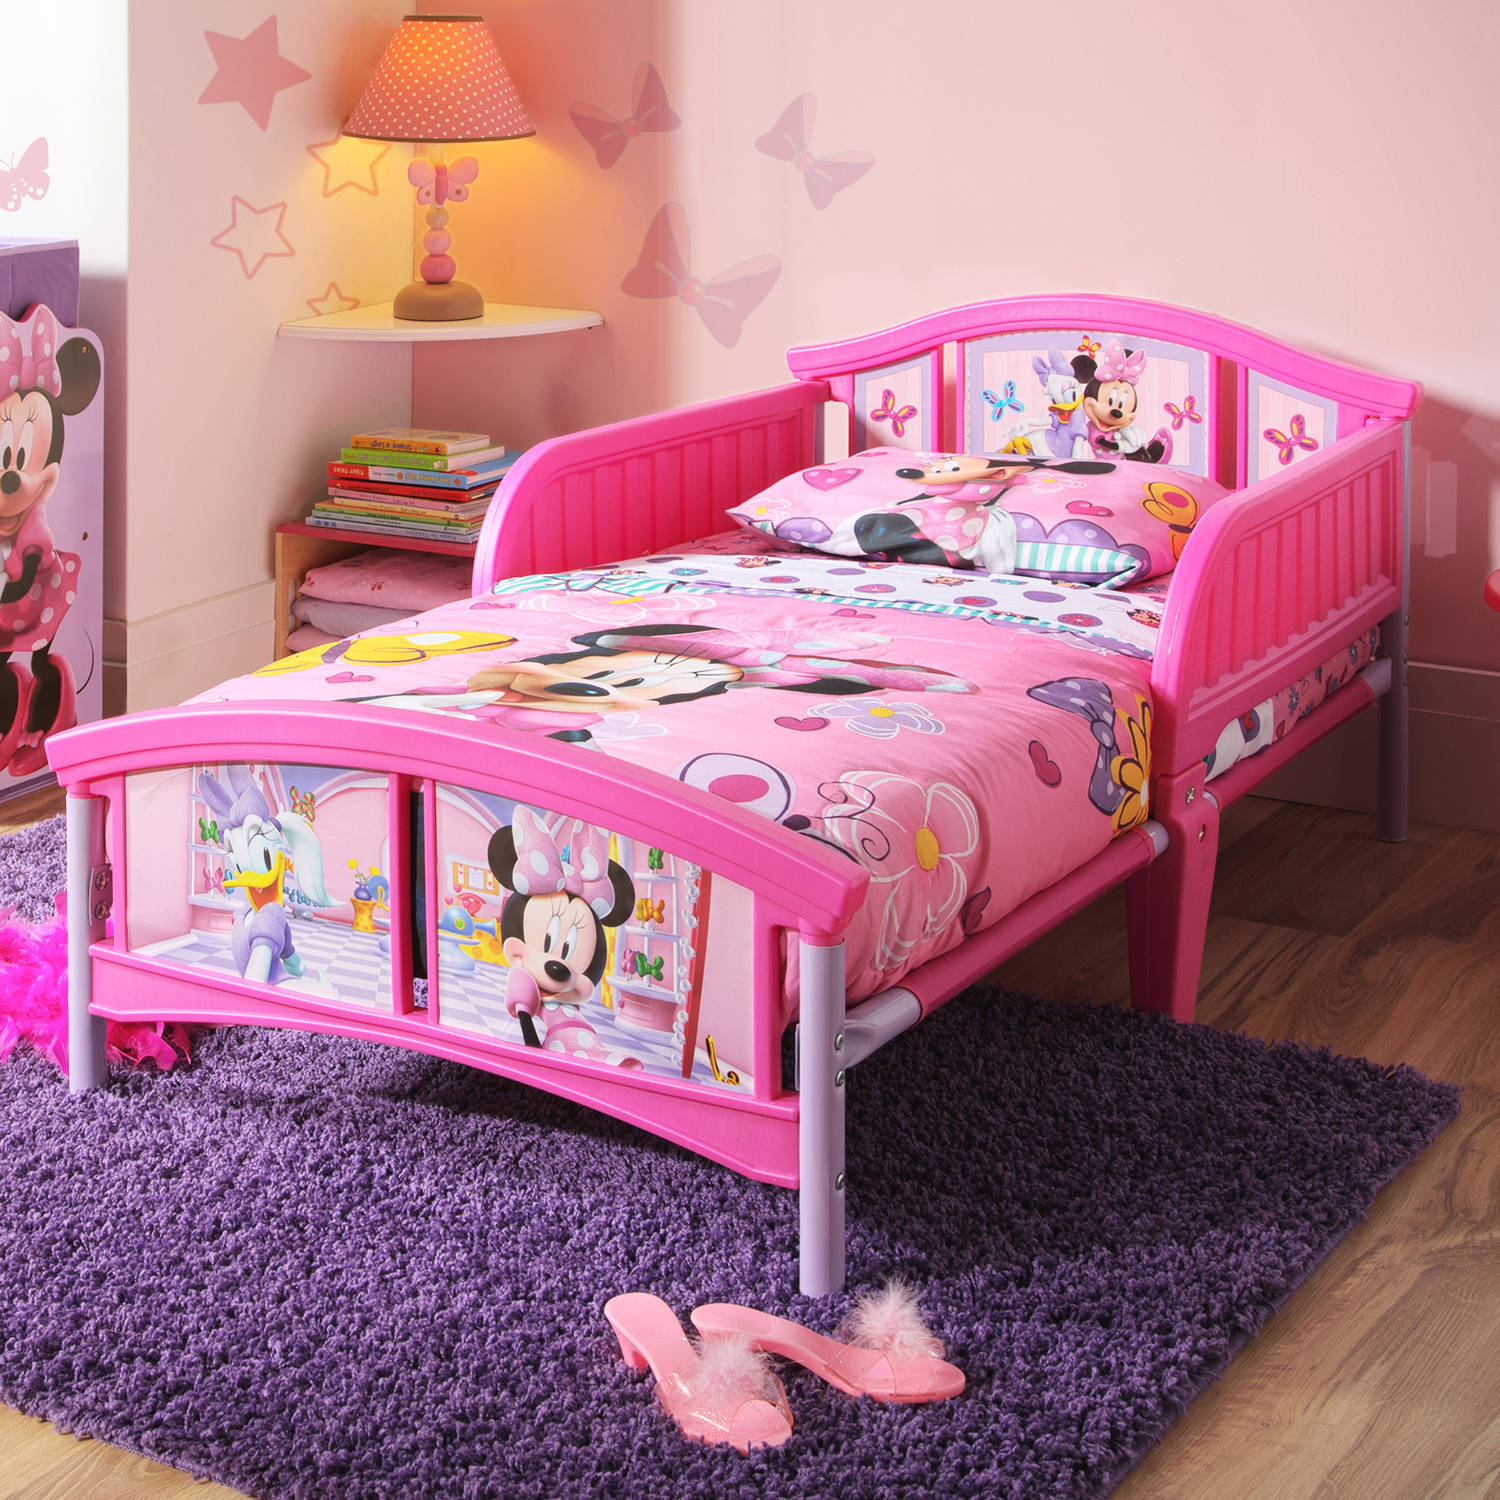 Disney Minnie Mouse Plastic Toddler Bed 829378472253